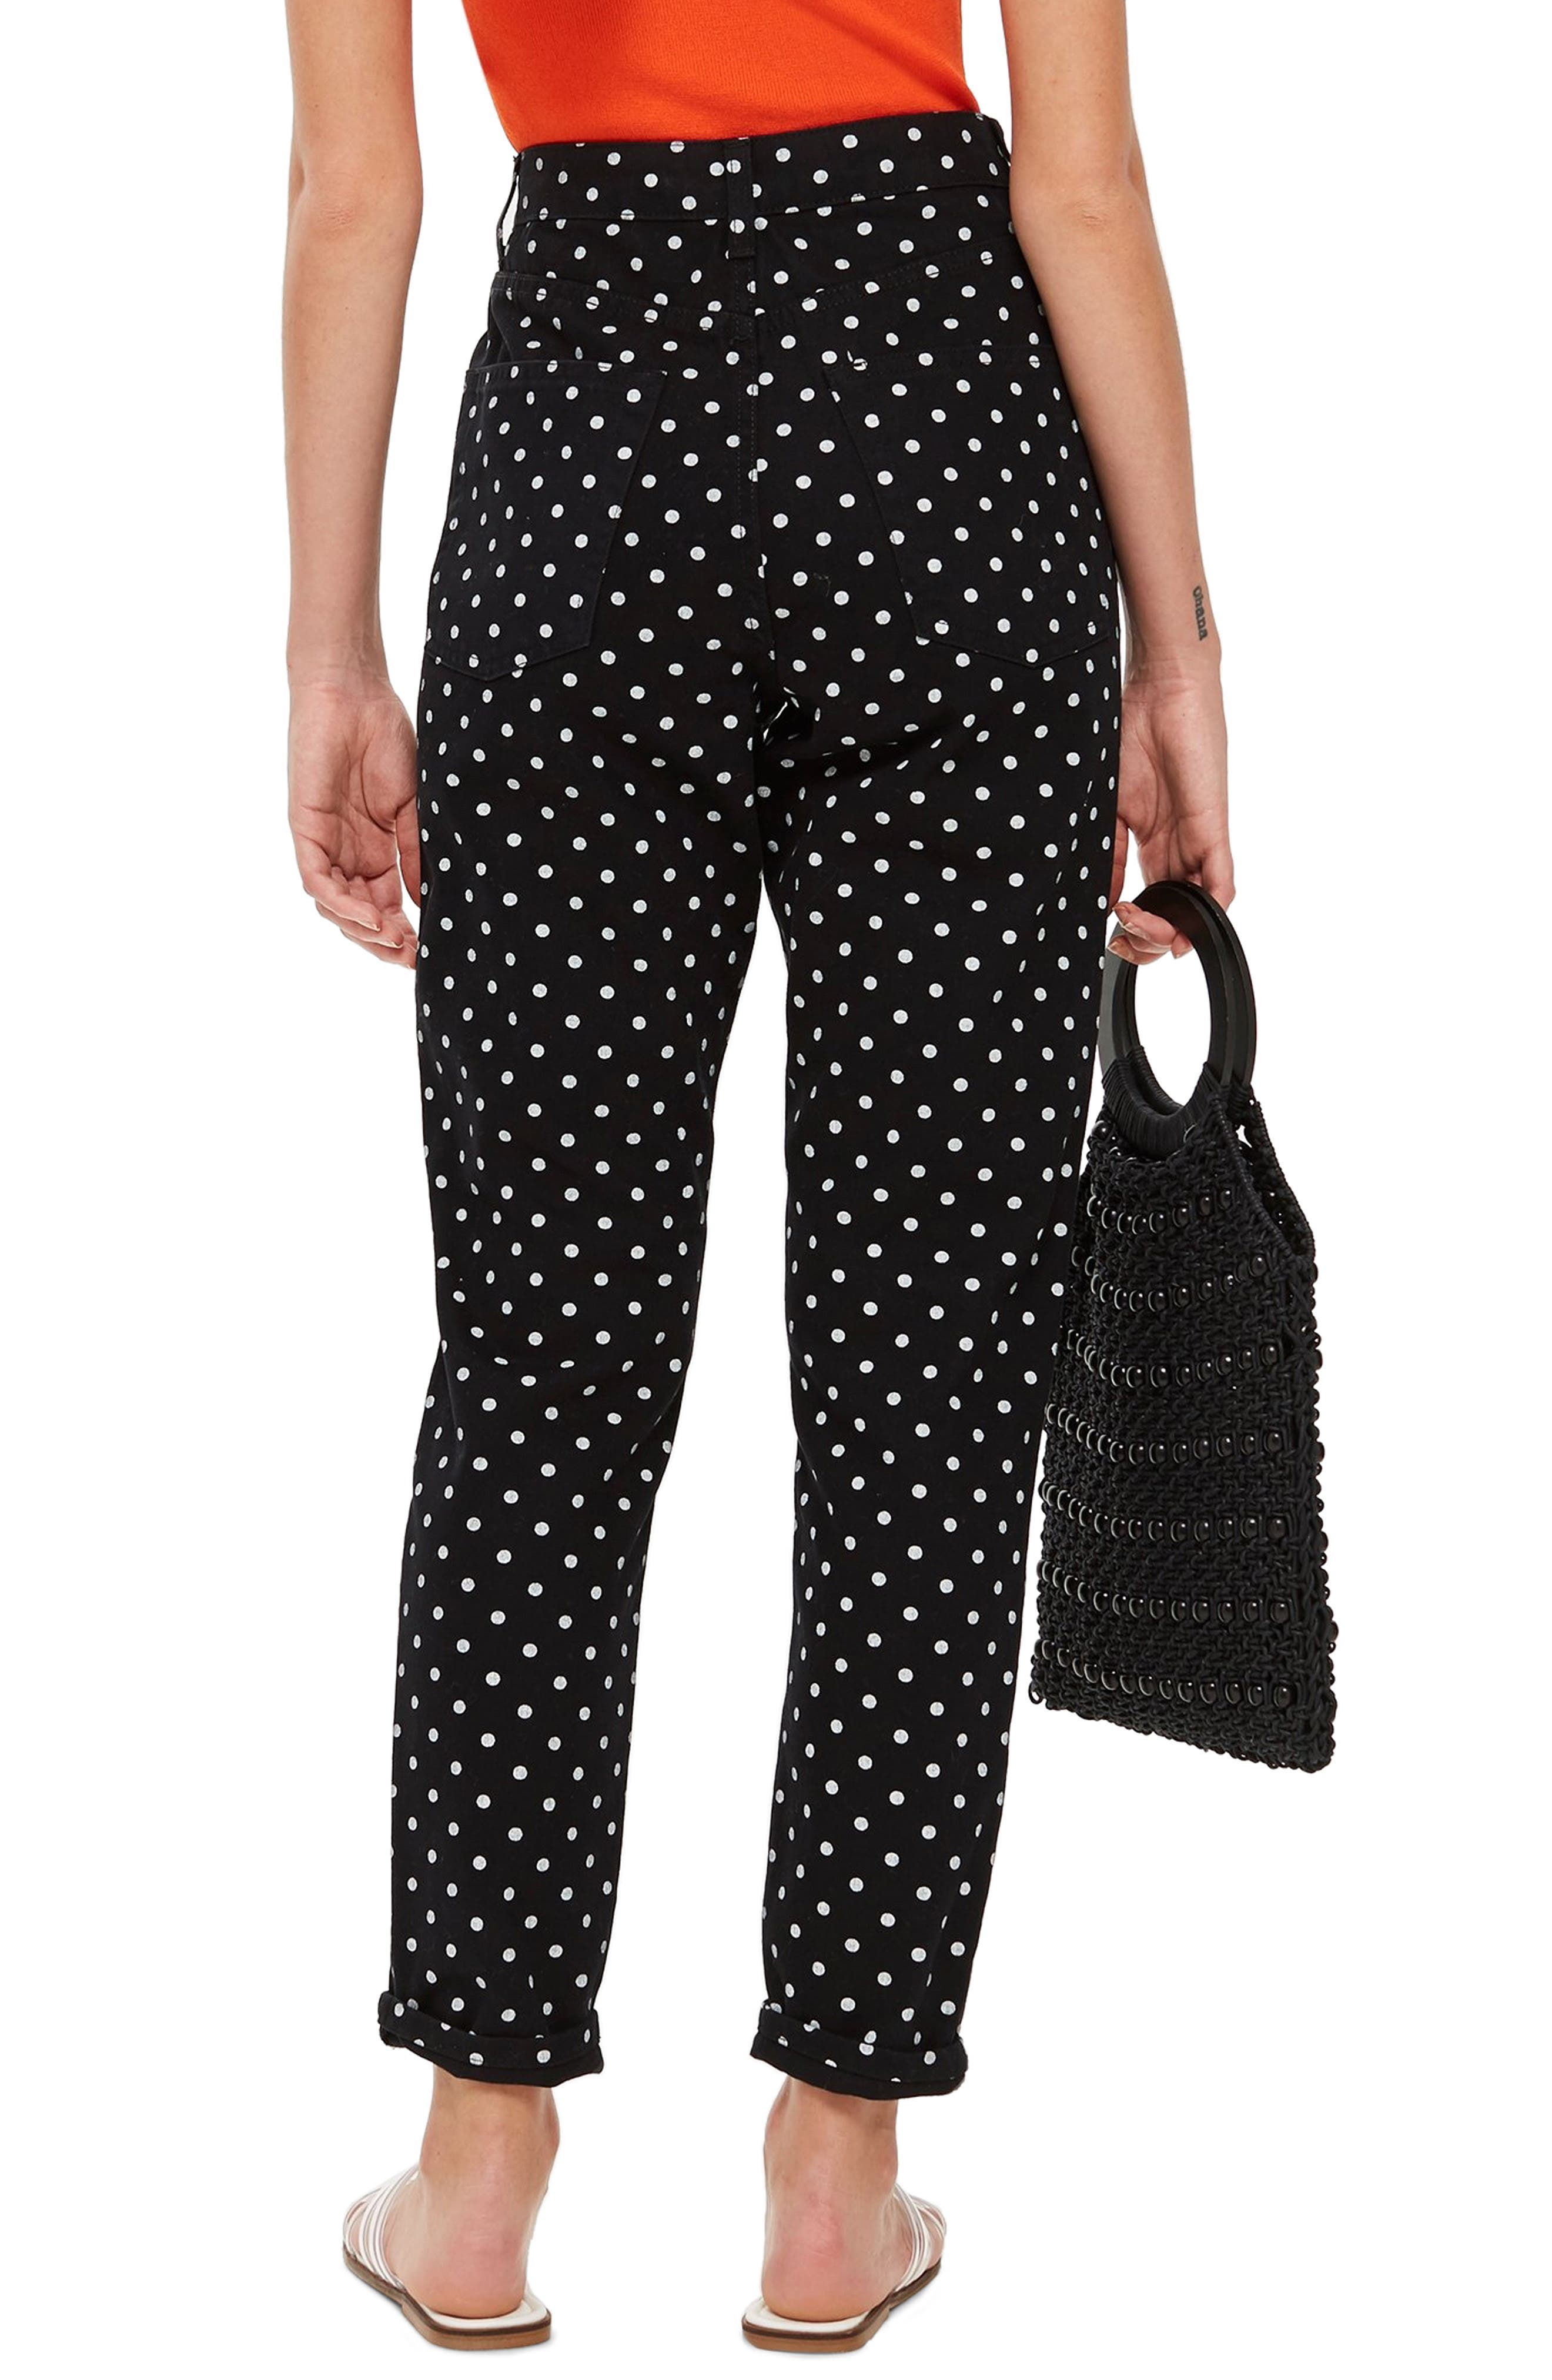 MOTO Polka Dot Mom Jeans,                             Alternate thumbnail 2, color,                             BLACK MULTI